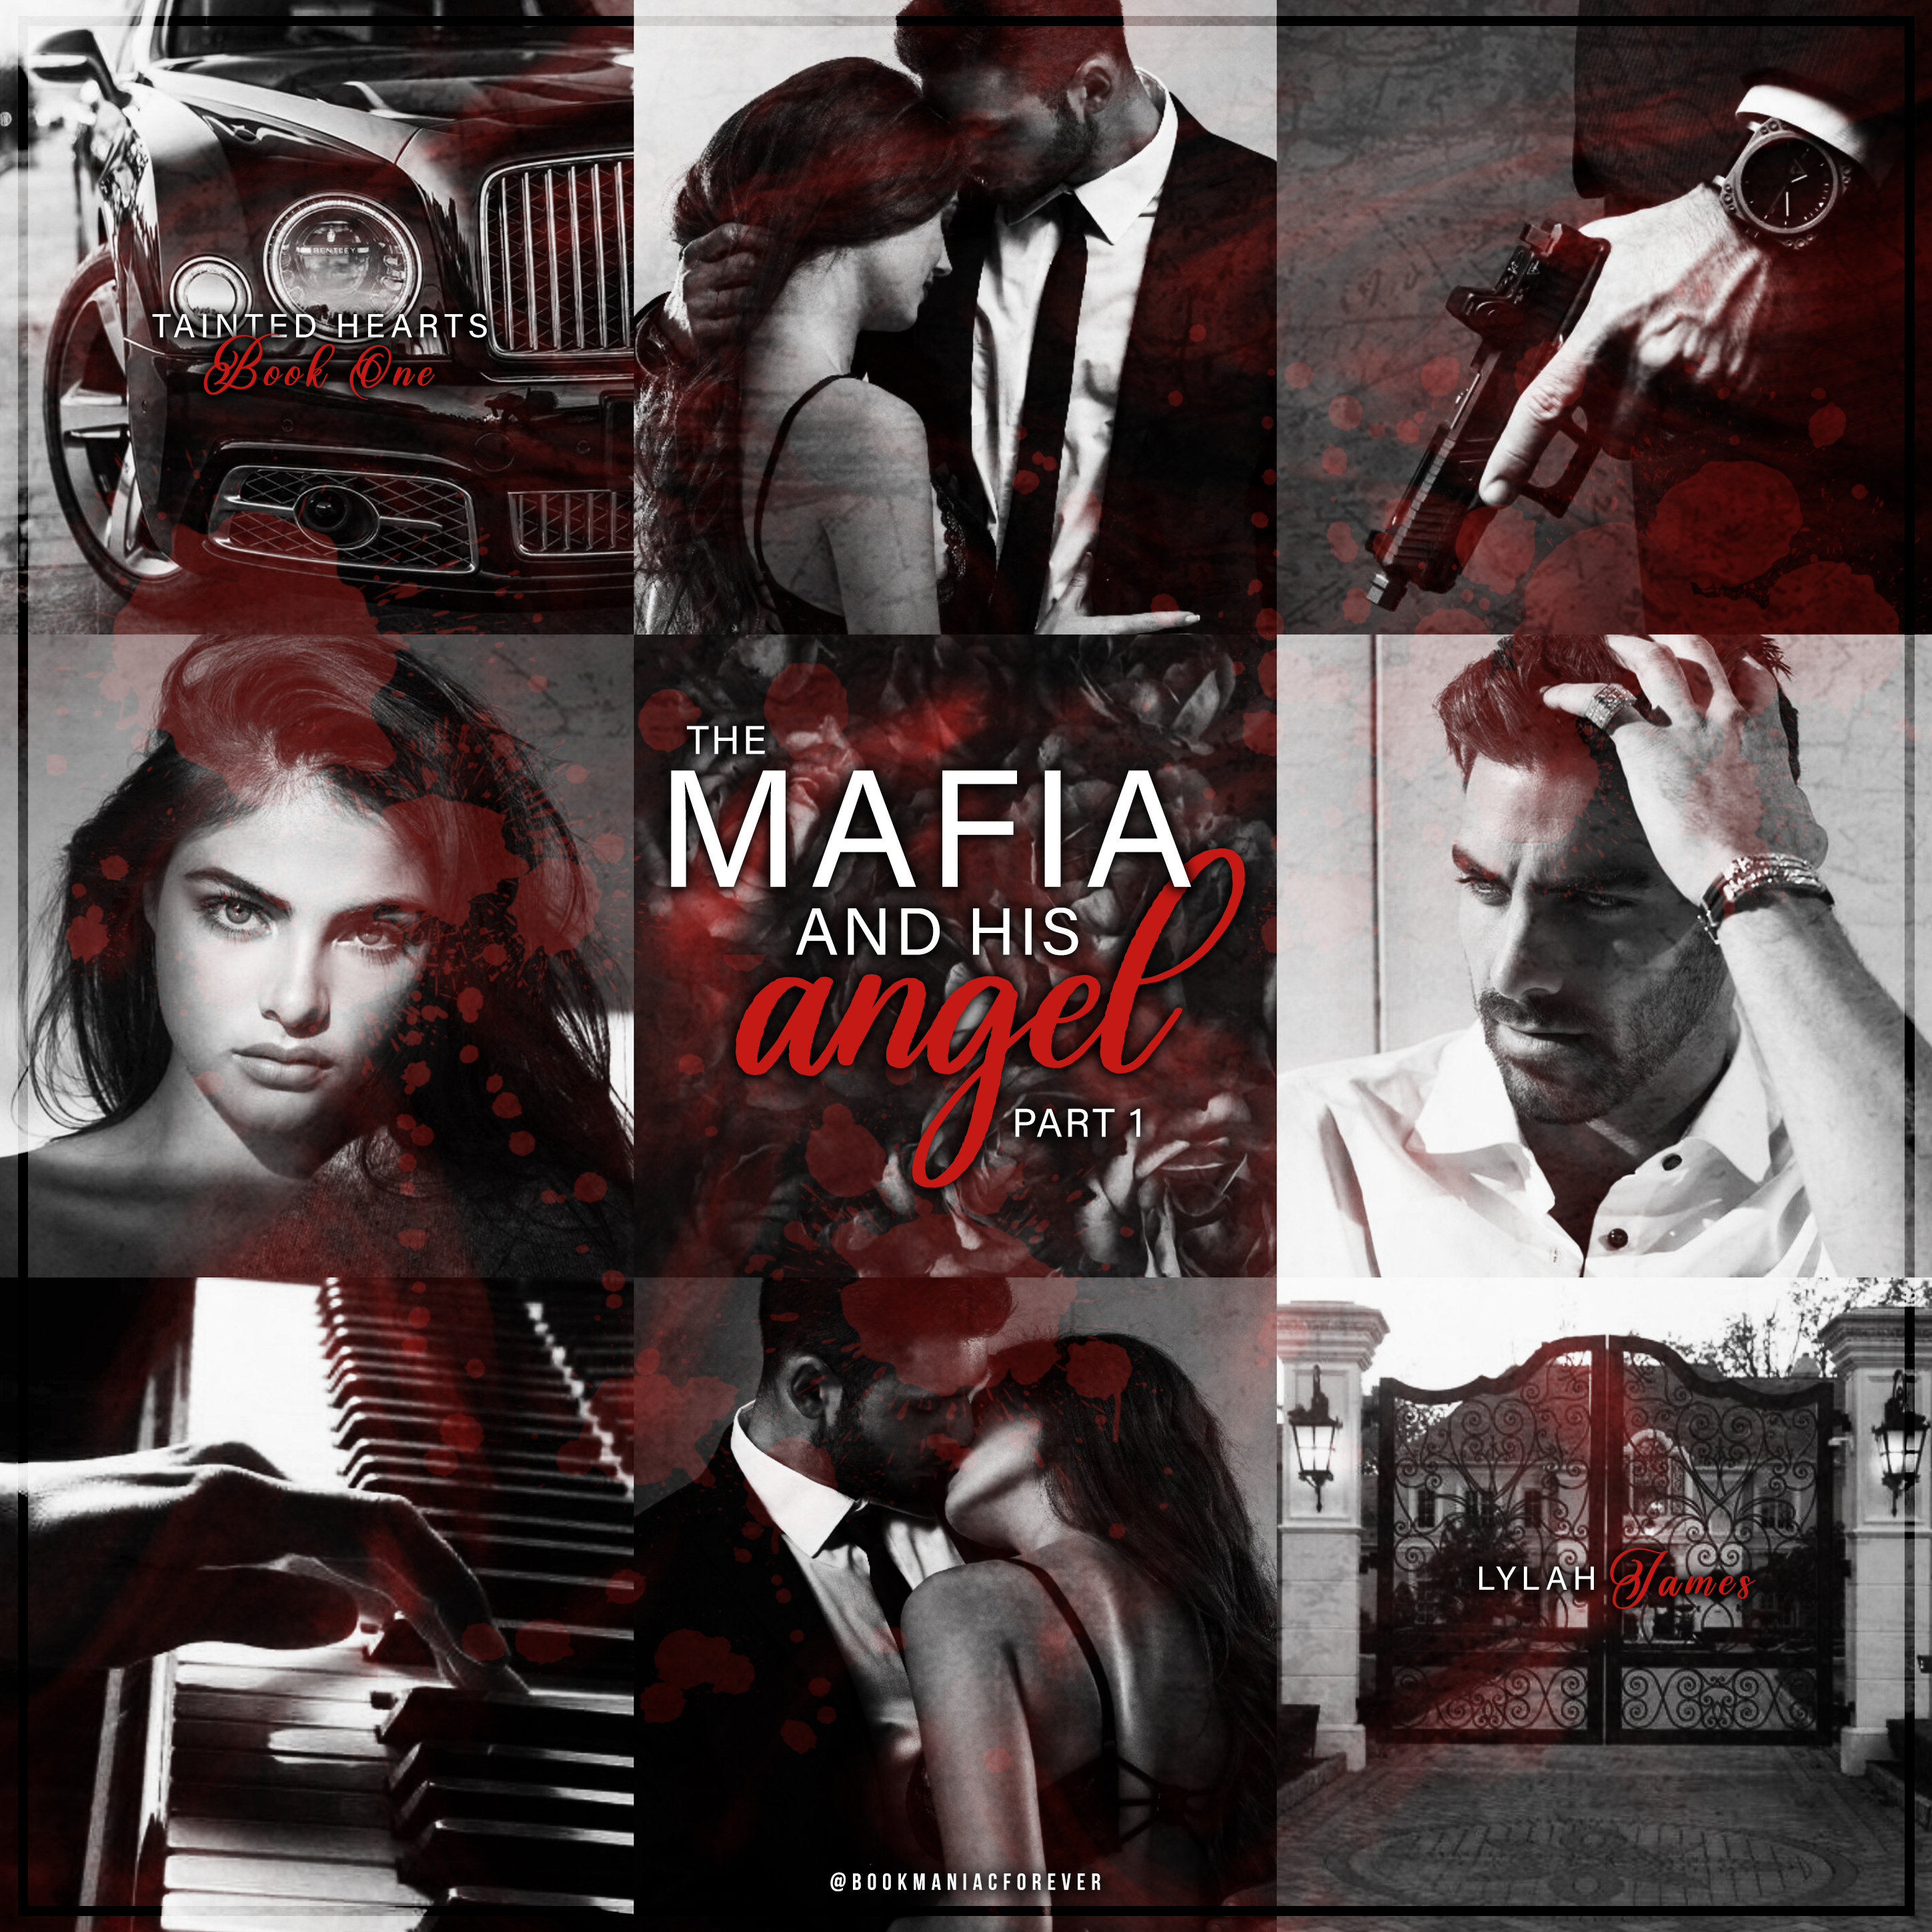 ⭐ Stories about the mafia